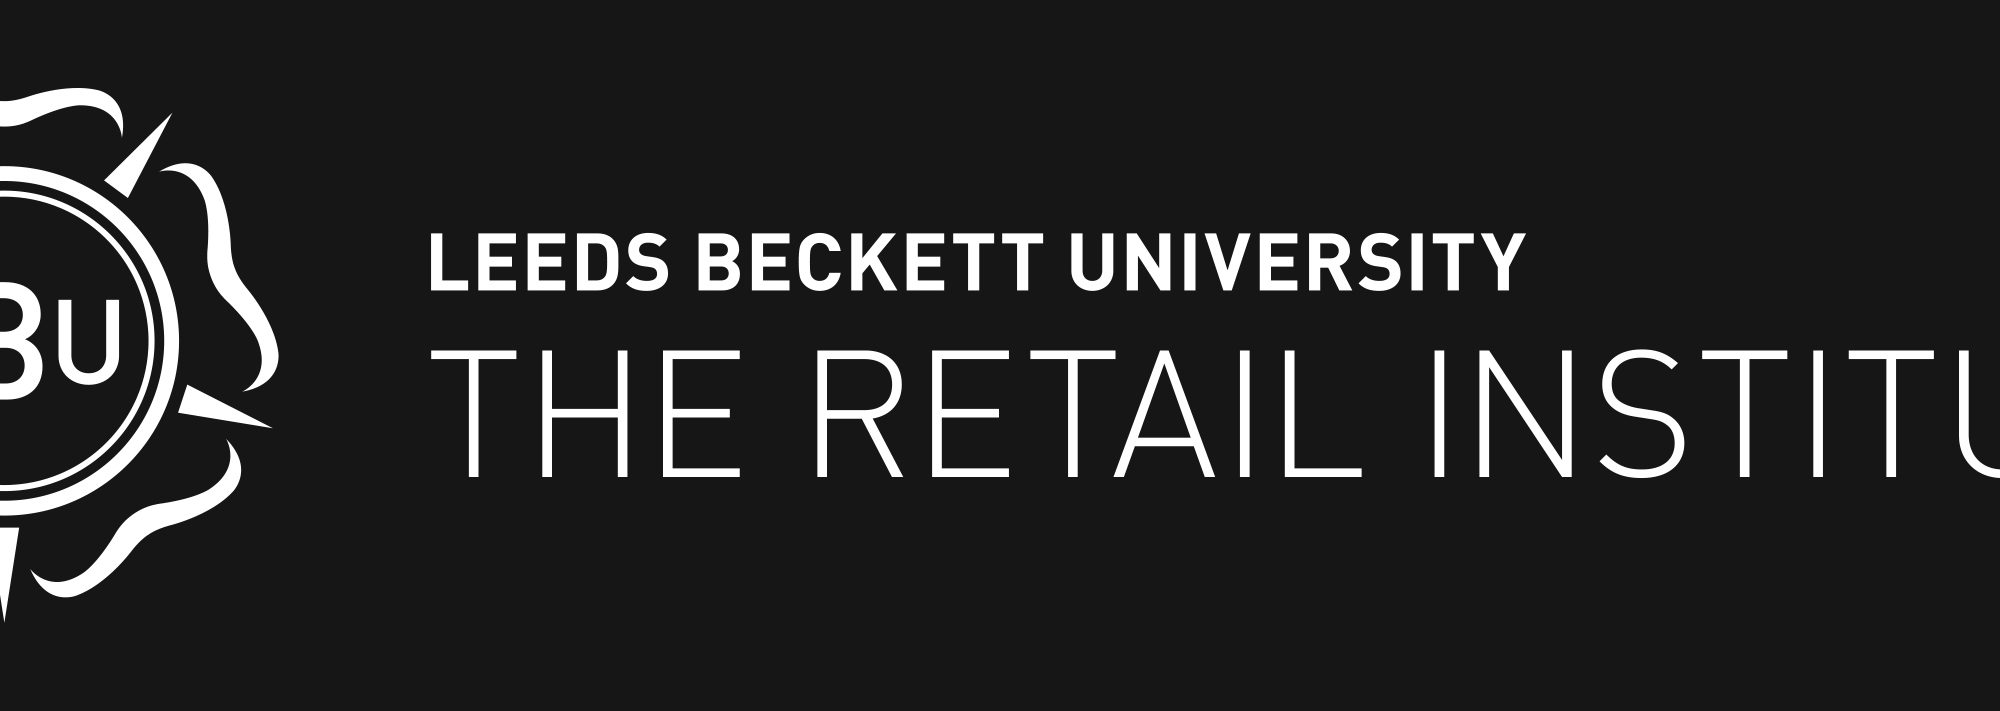 The Retail Institute logo